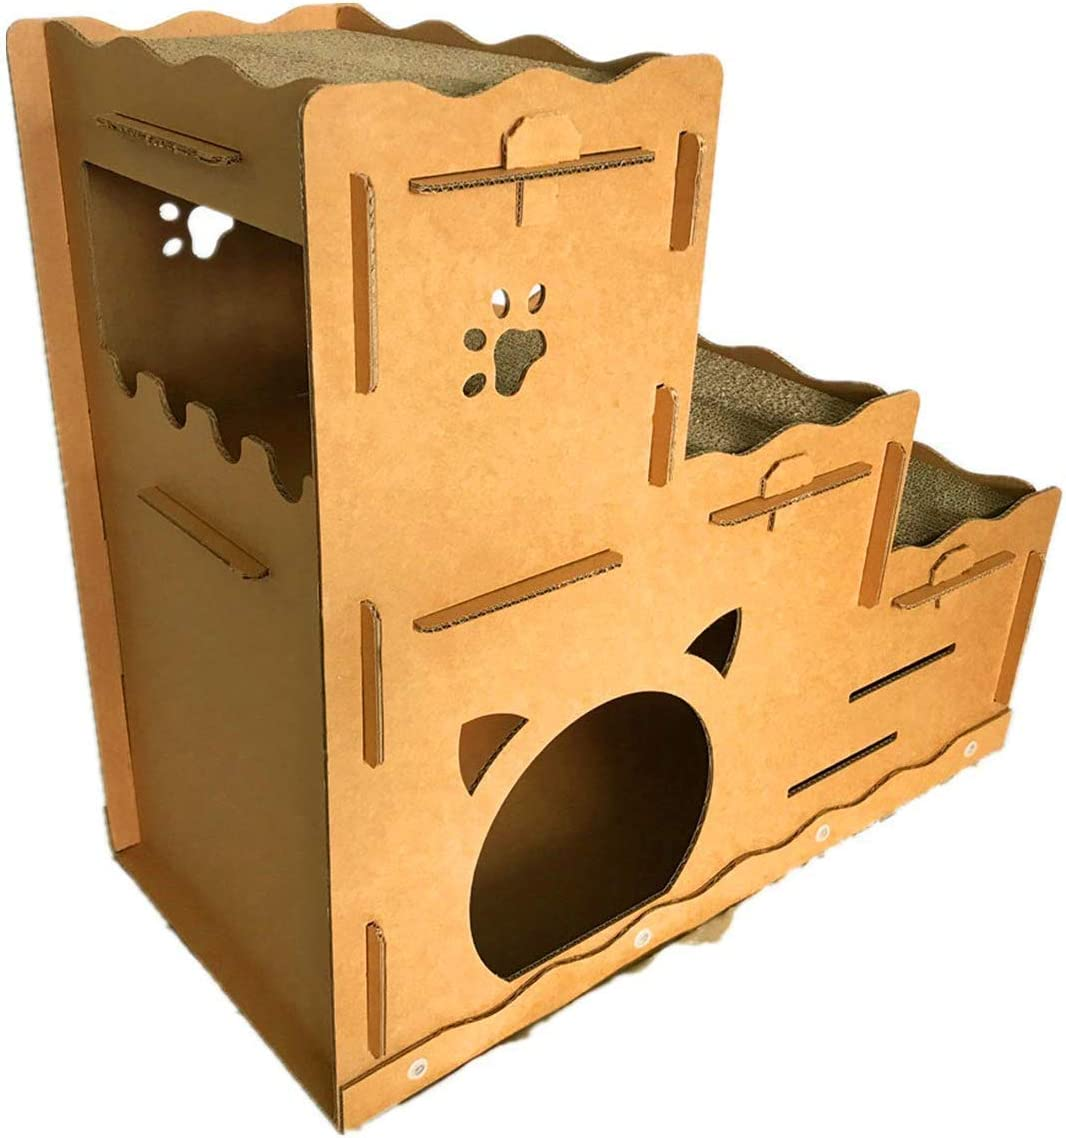 Seny Cardboard Fees free!! Cat House with W30 X D1 Three-Story High material Scratcher